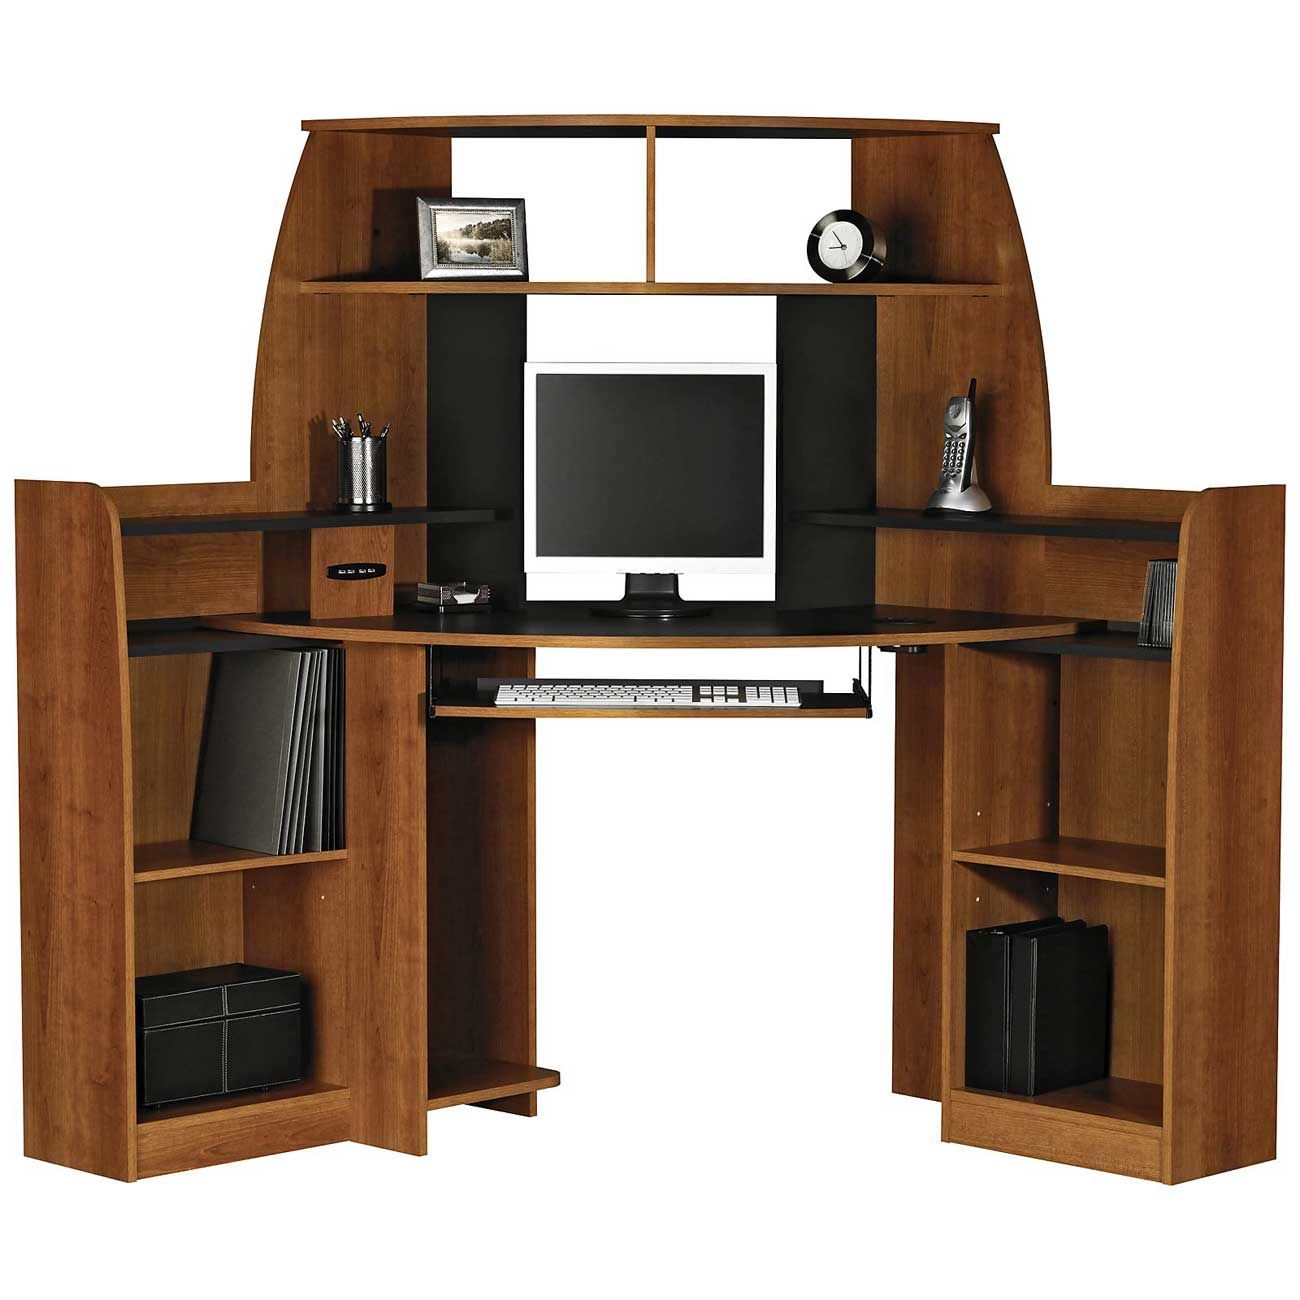 solid wood corner computer desk with double storage  my kas  - solid wood corner computer desk with double storage